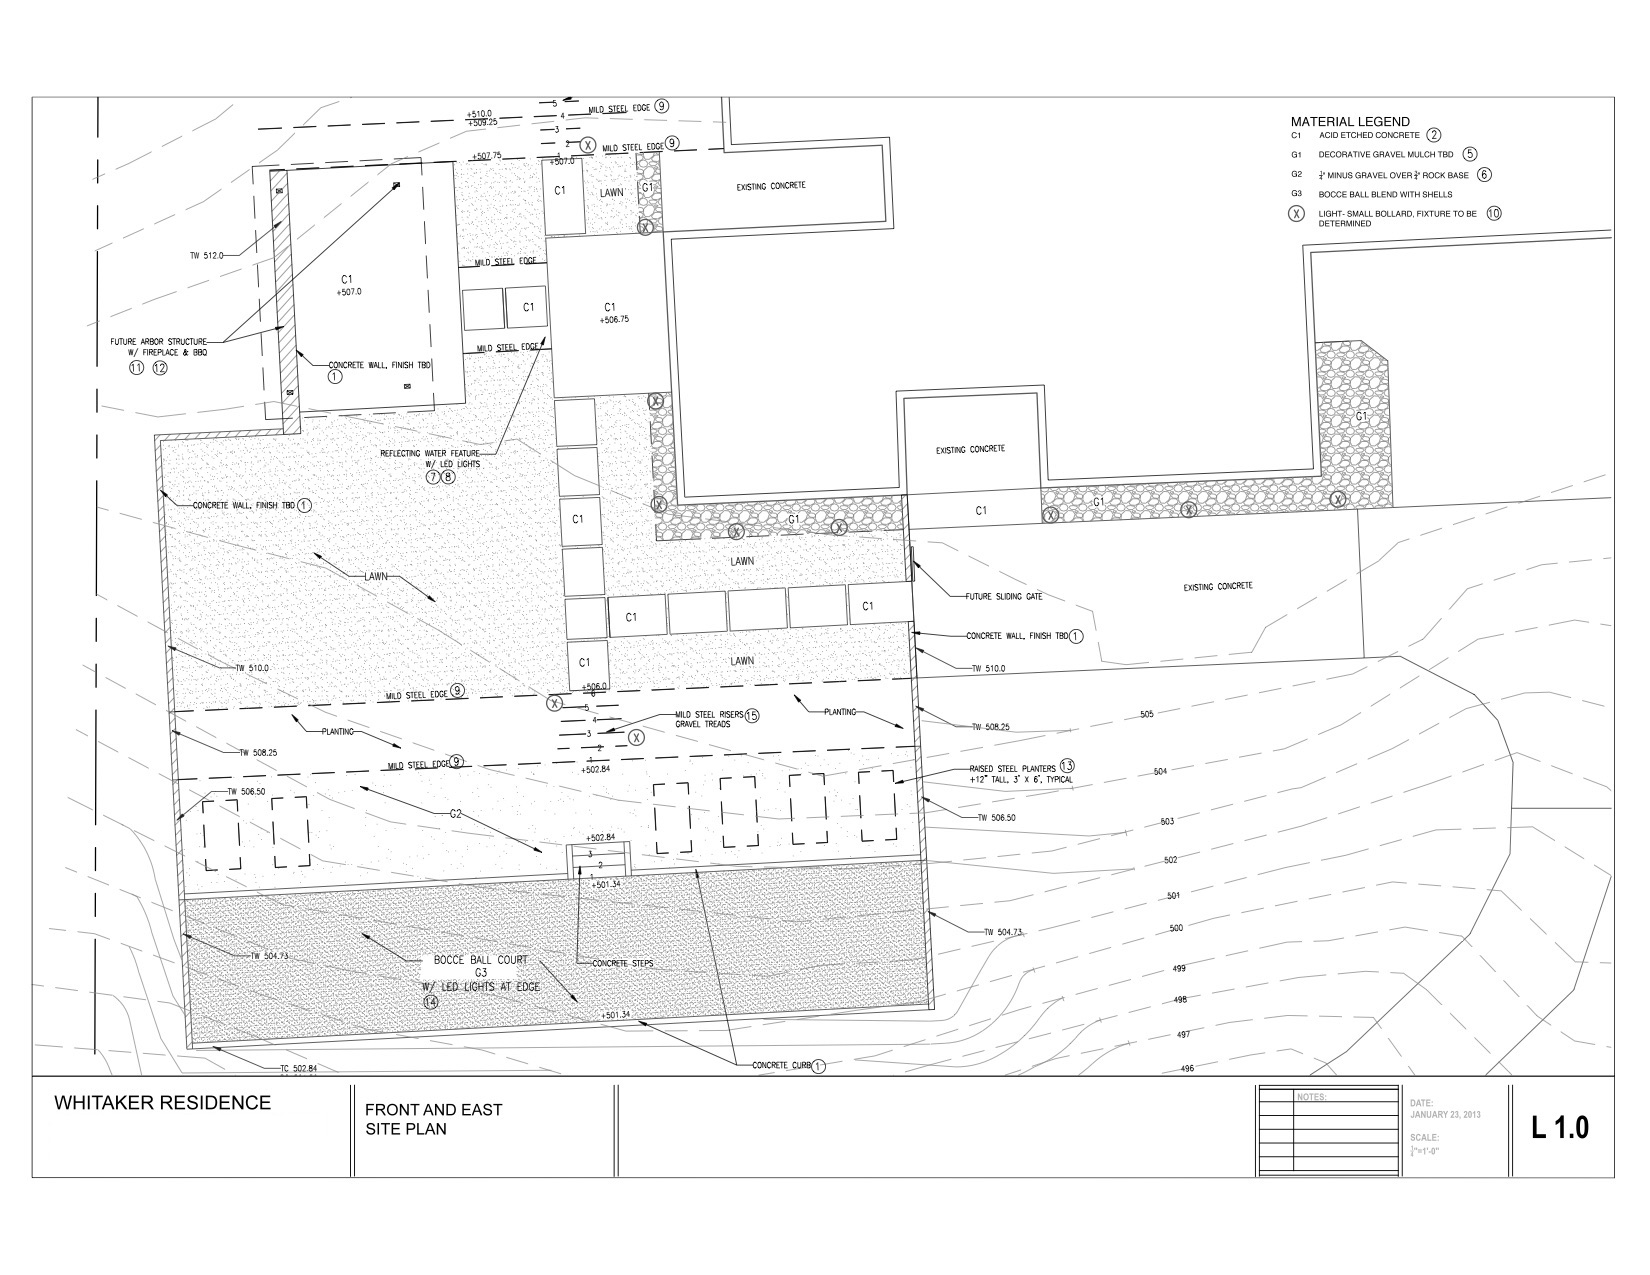 My original design plan, drawn up several years ago. No, we weren't REALLY going to put in a bocce ball court (and I have no idea how that ever would have worked with our slope)… but the idea was fun!